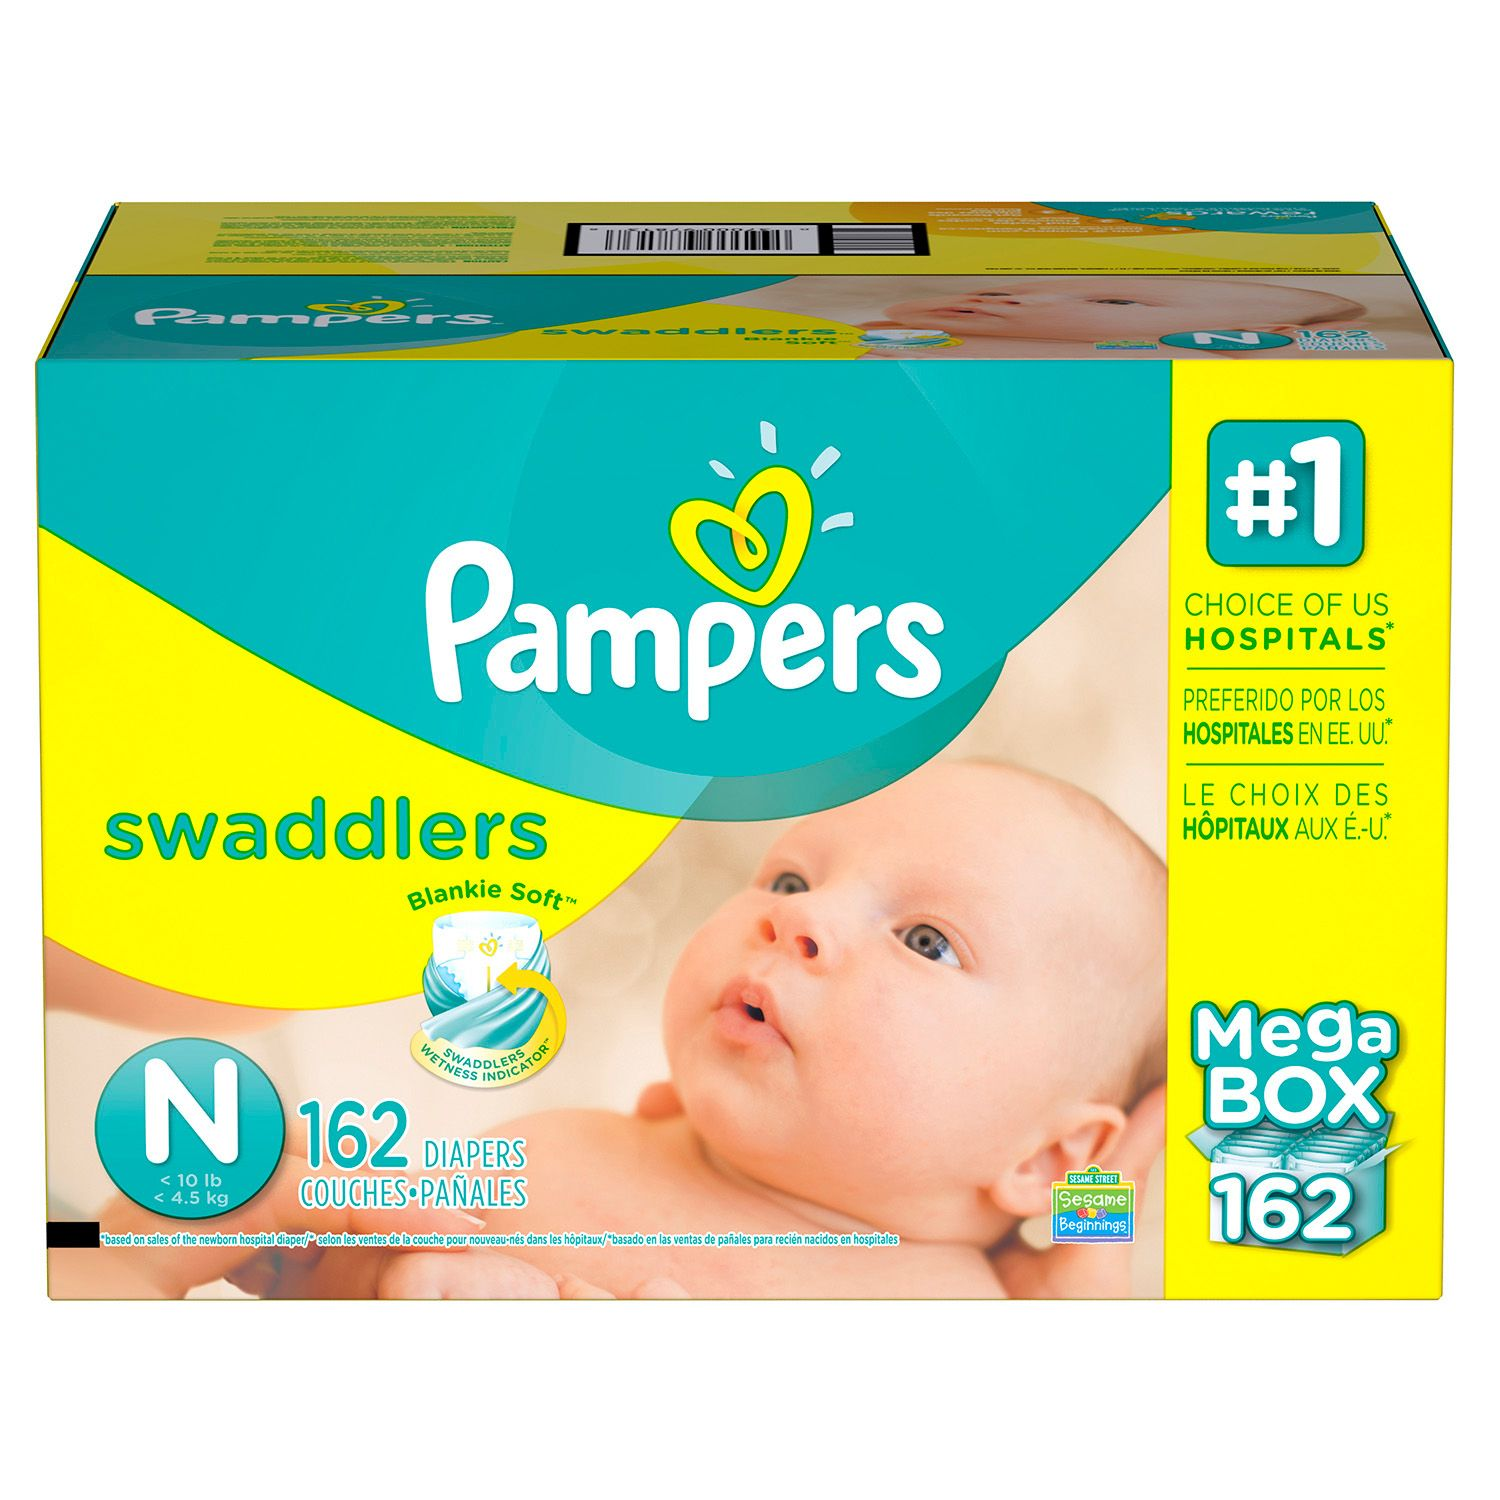 Pampers Swaddlers Diapers (Size N, 162 ct.)